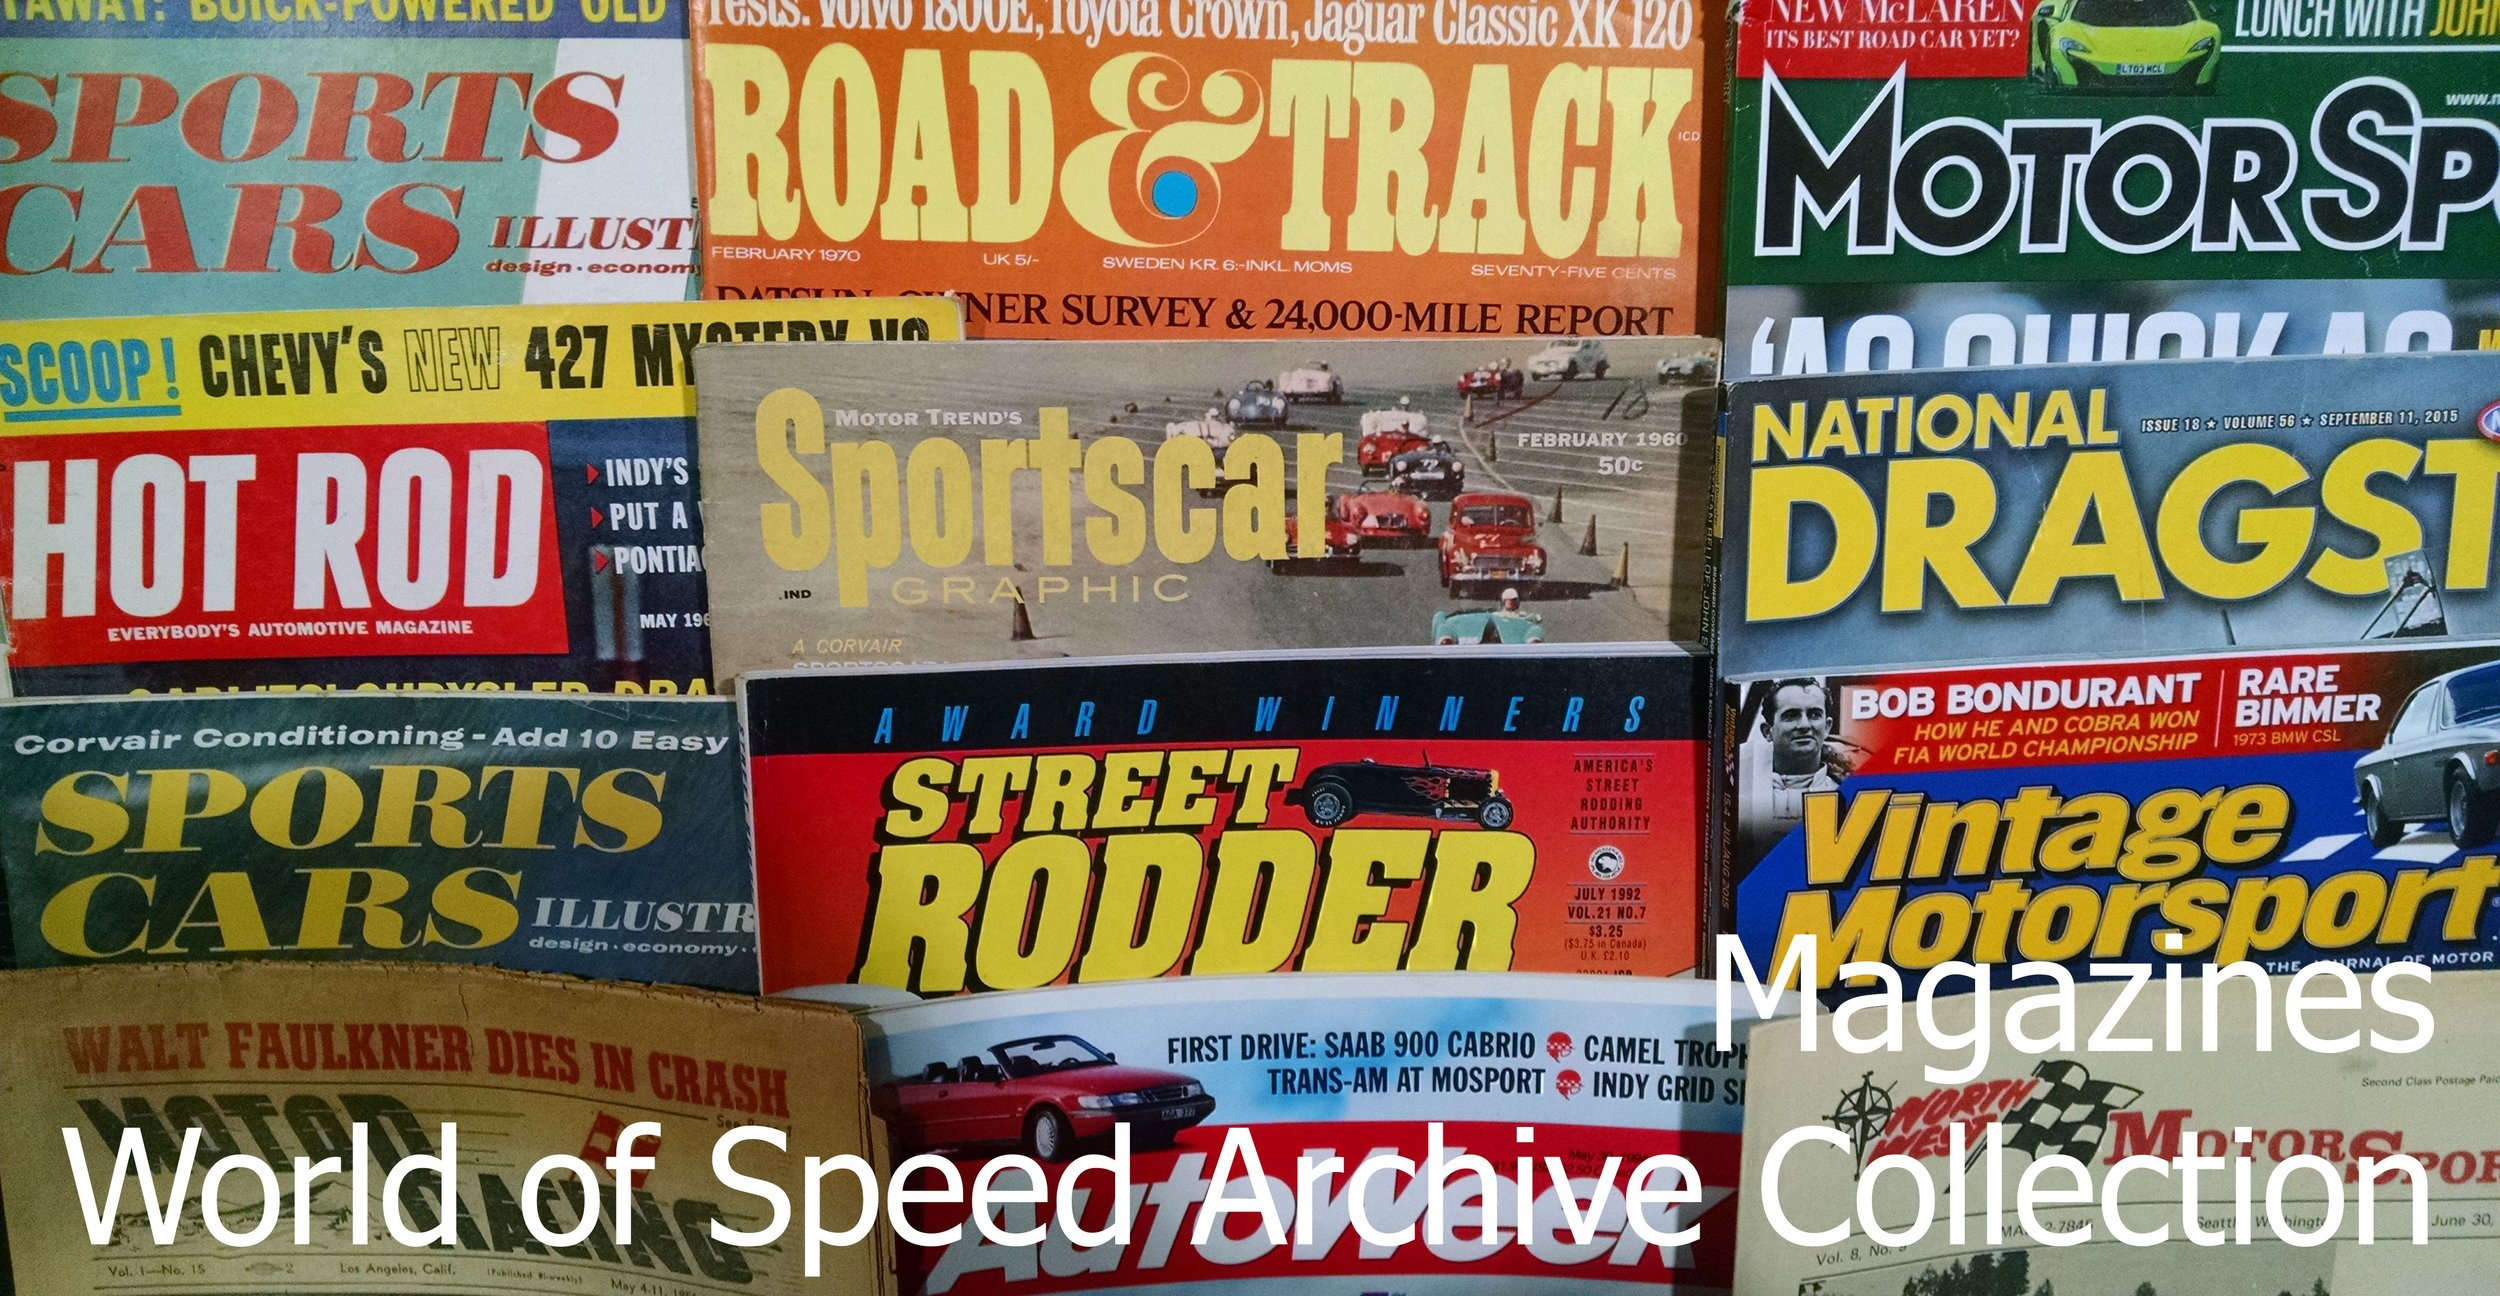 Archive Blog — World of Speed